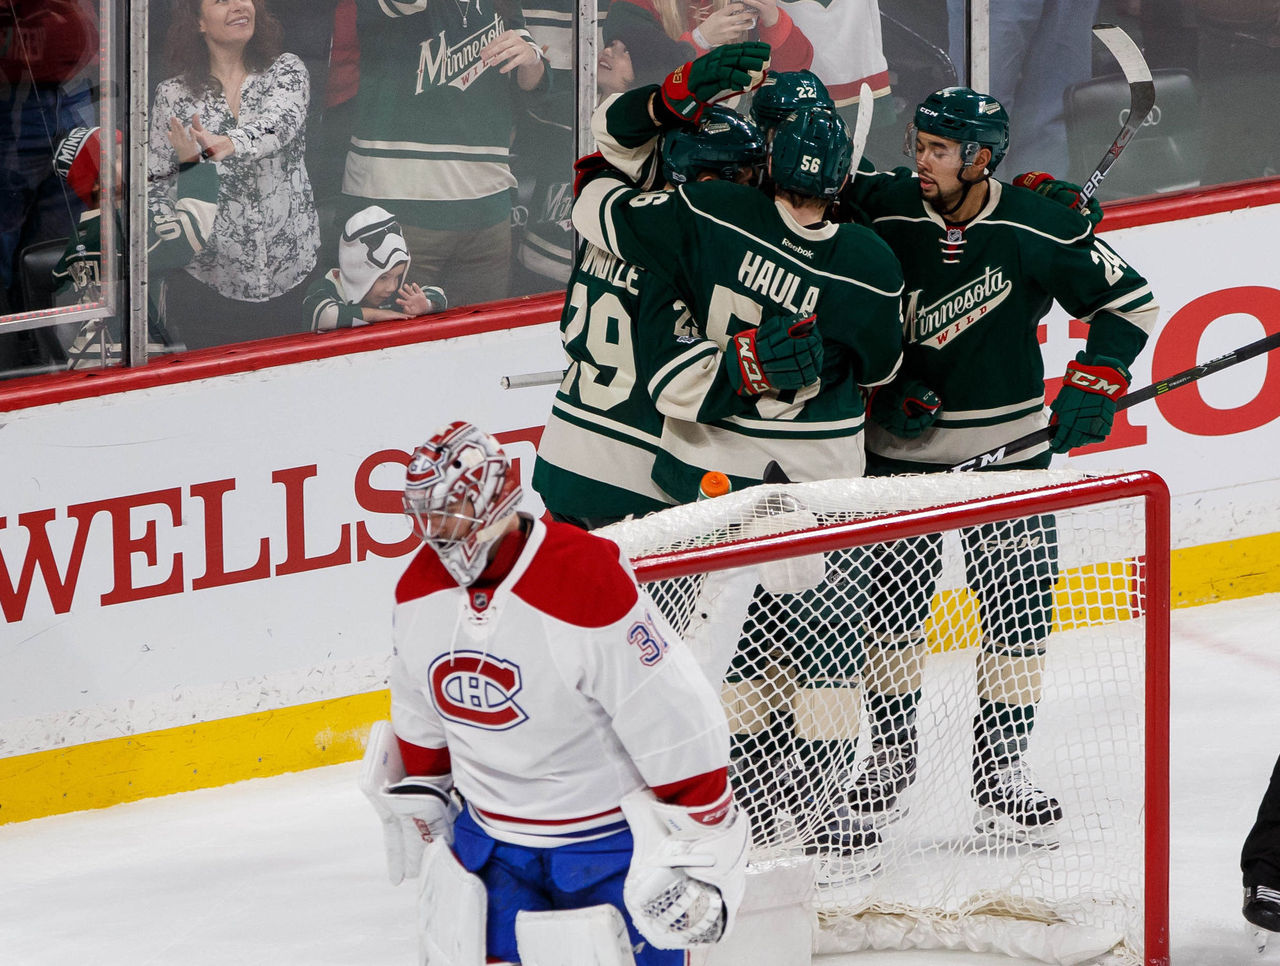 Cropped 2017 01 13t041748z 2064360850 nocid rtrmadp 3 nhl montreal canadiens at minnesota wild